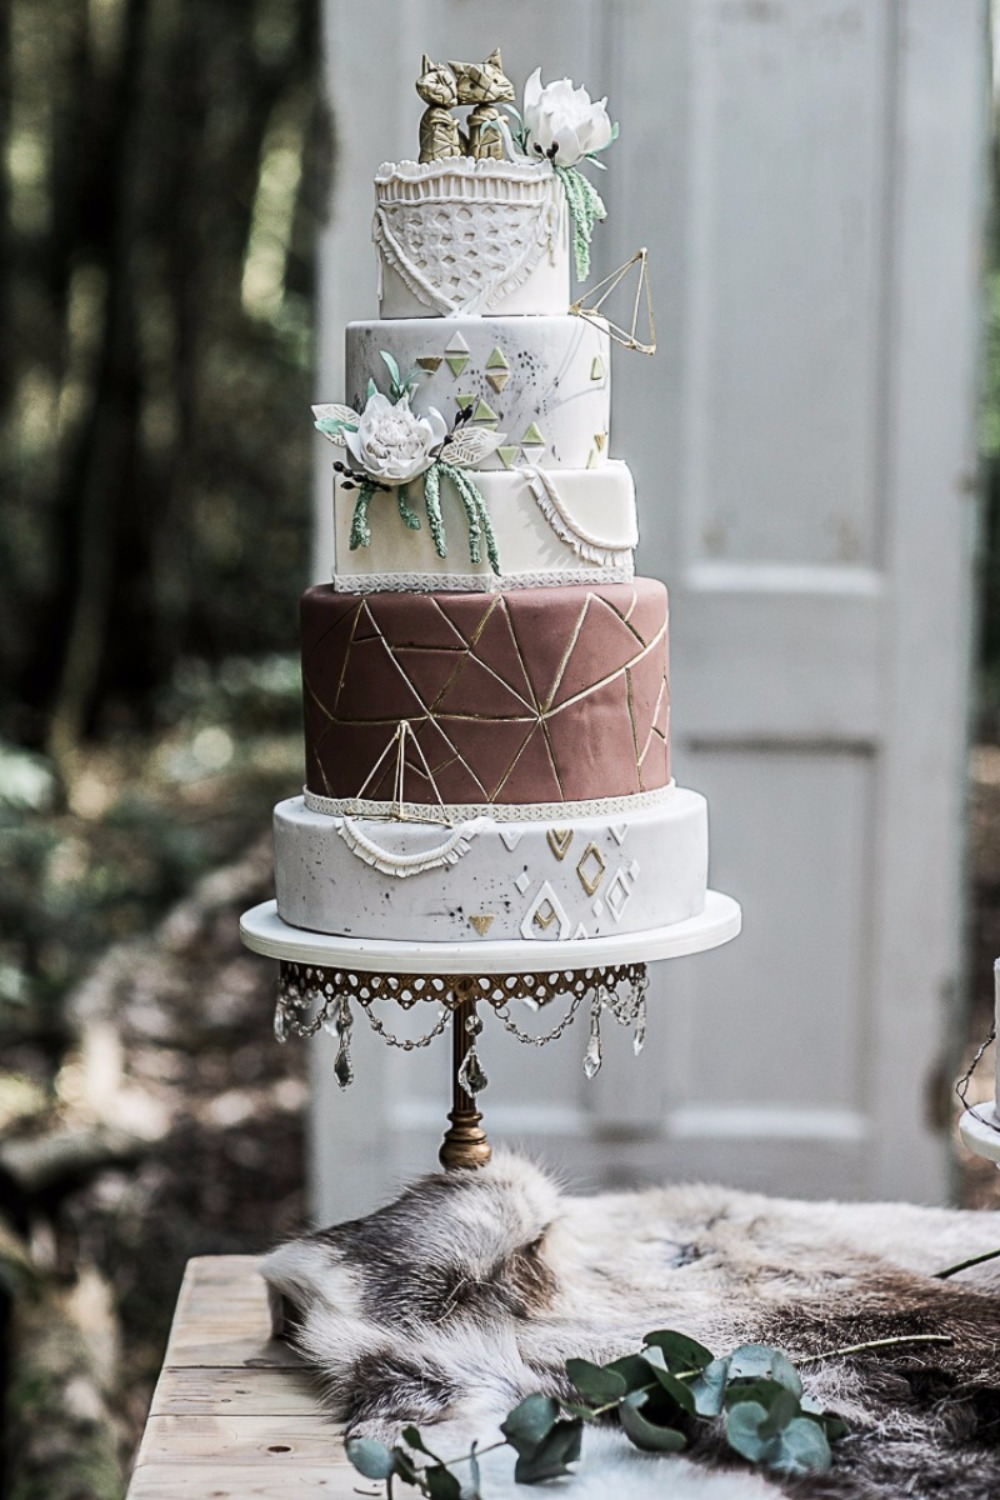 Our antique gold chandelier cake stand couldn't complement the boho vibe any better!    Opulent Treasures